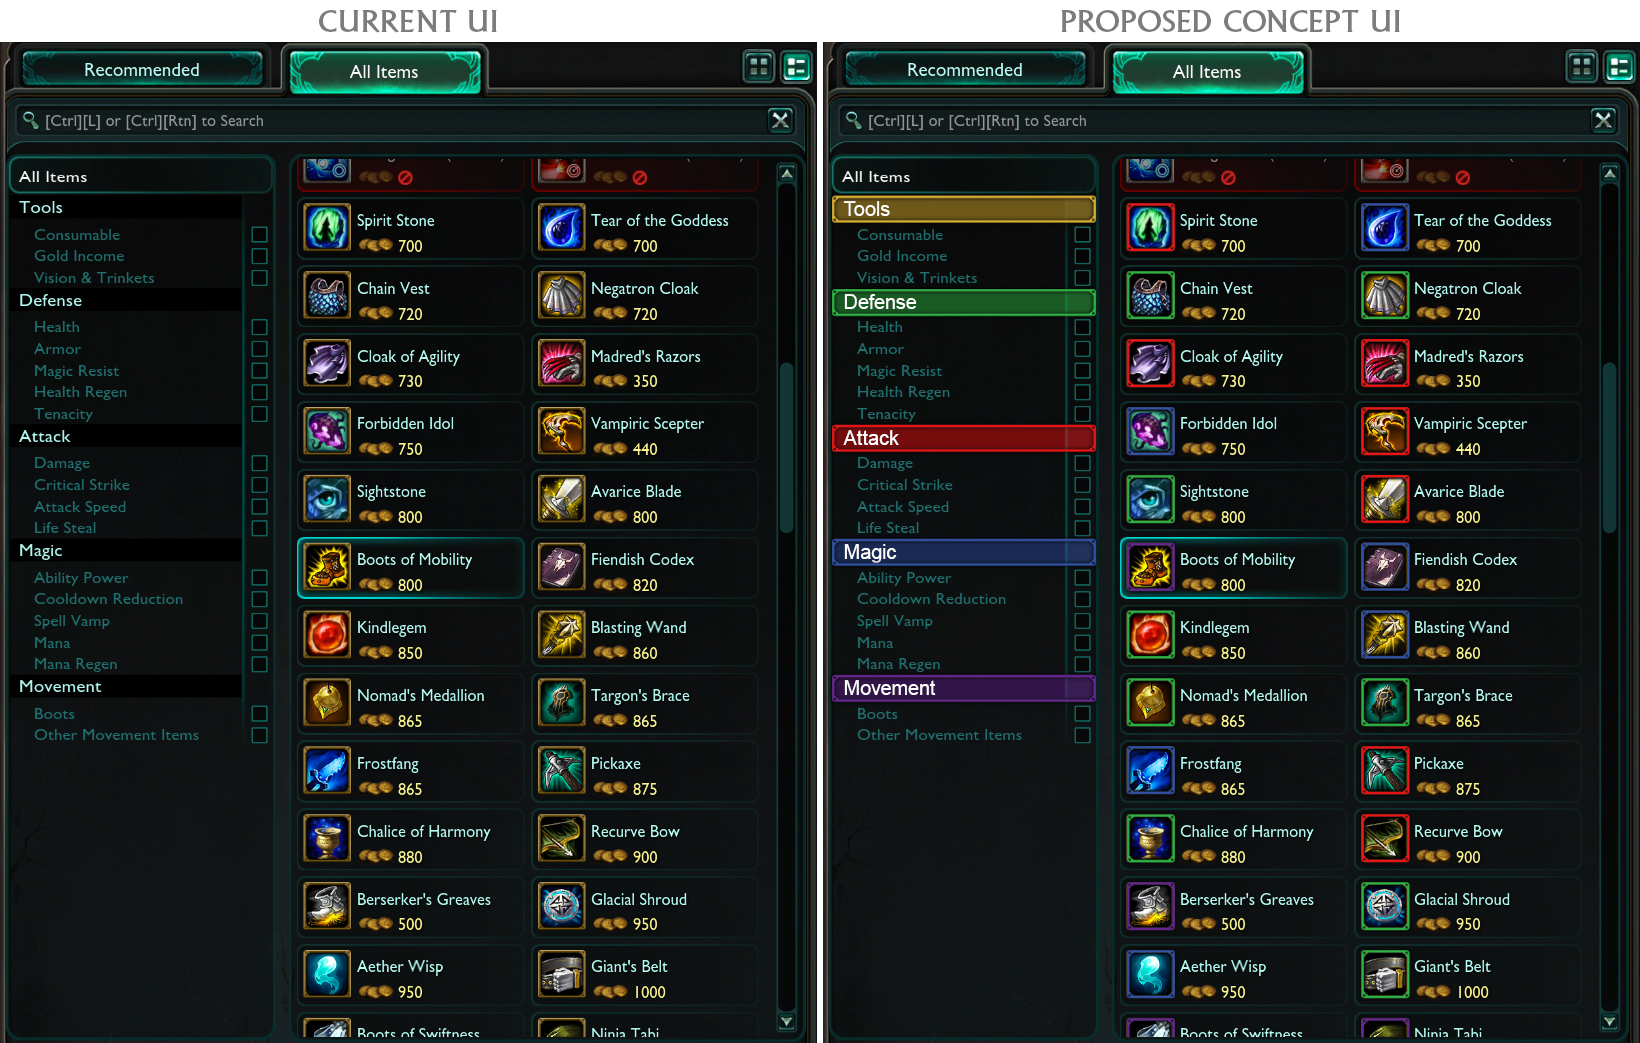 League of Legends User Interface Concepts on Behance